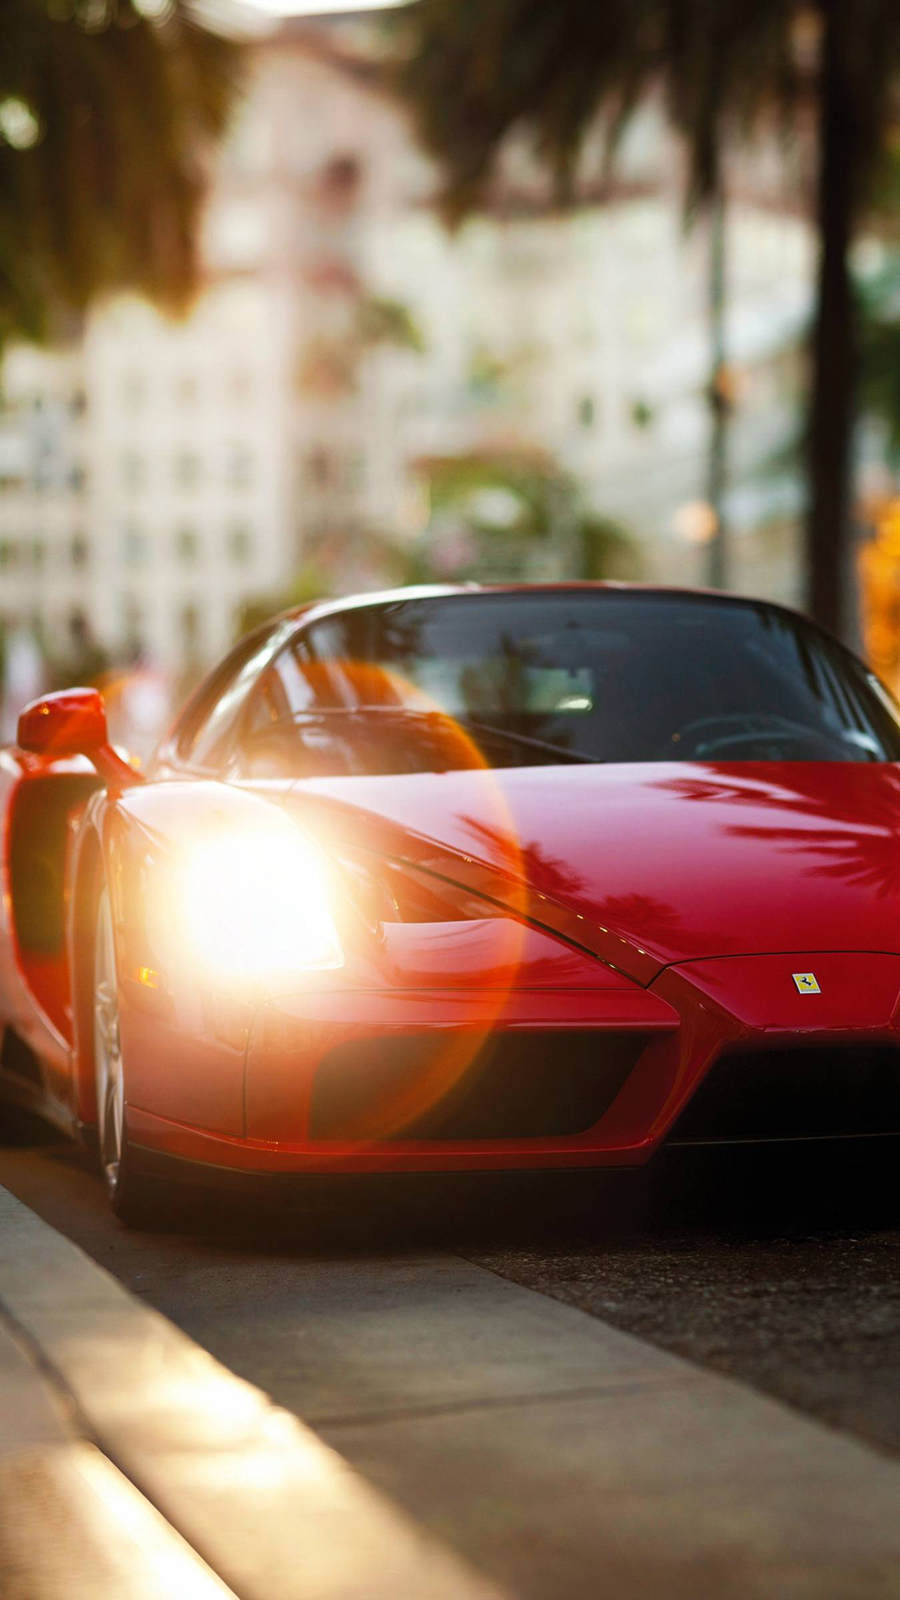 SuperCar HD Wallpapers Free Download